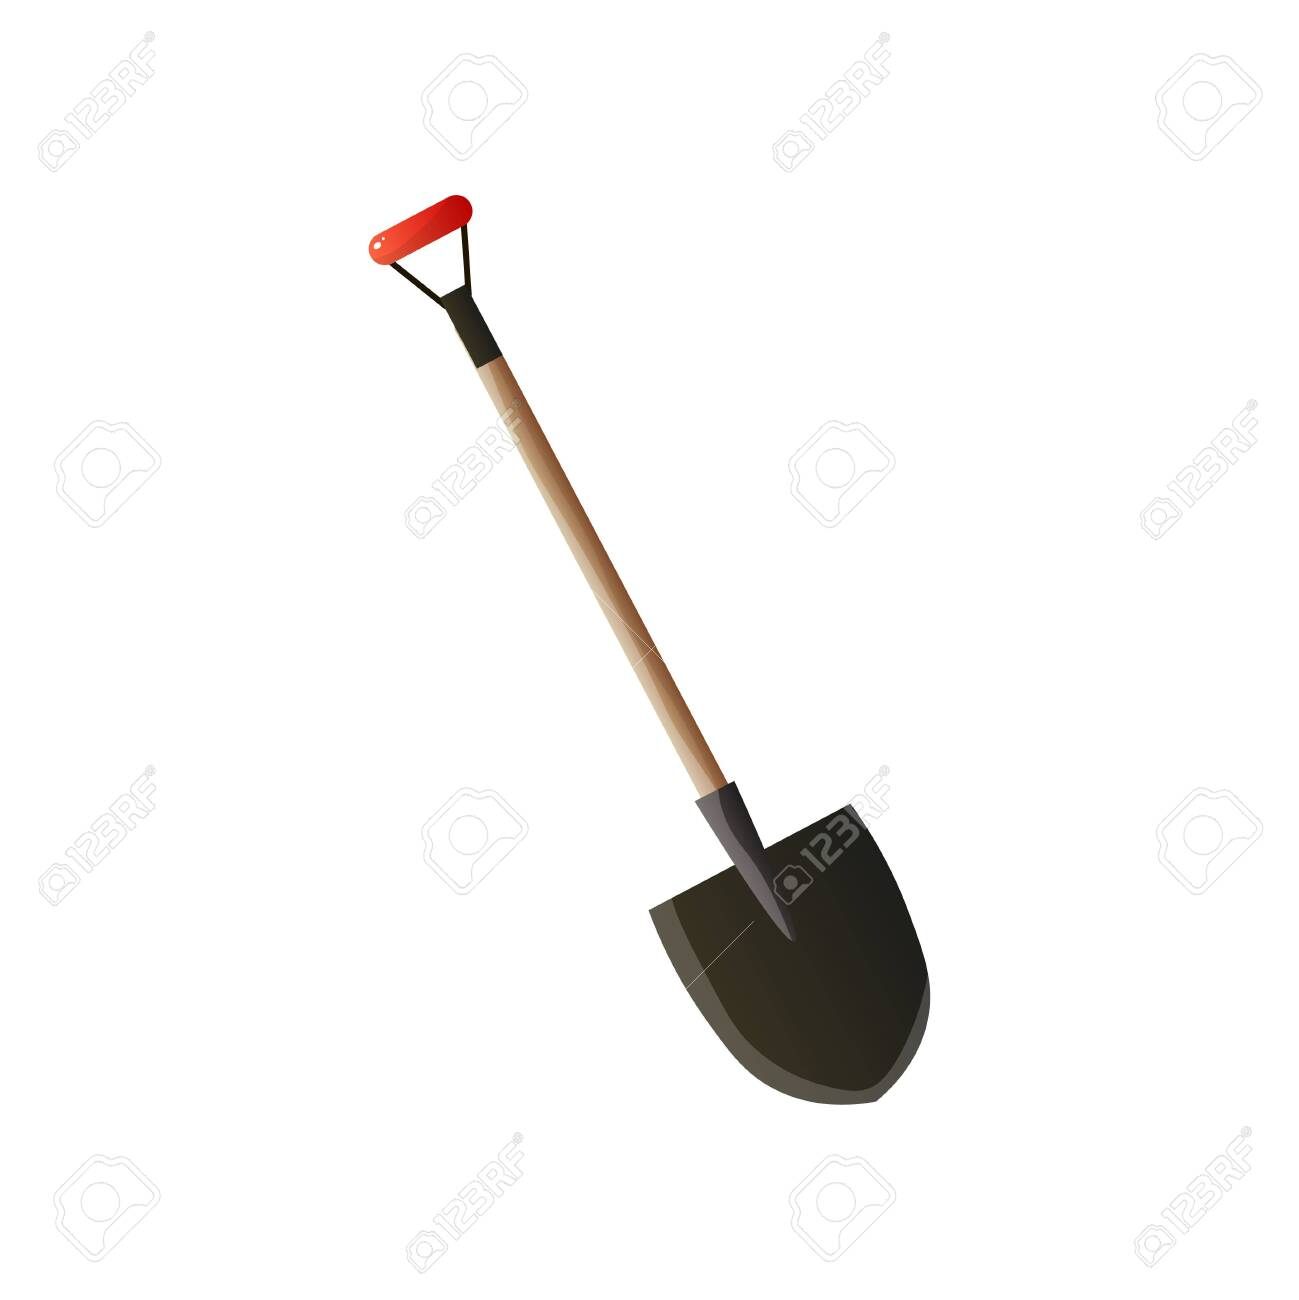 Firefighting Sticker With Steel Fire Spade With Wooden Handle Royalty Free Cliparts Vectors And Stock Illustration Image 124436087